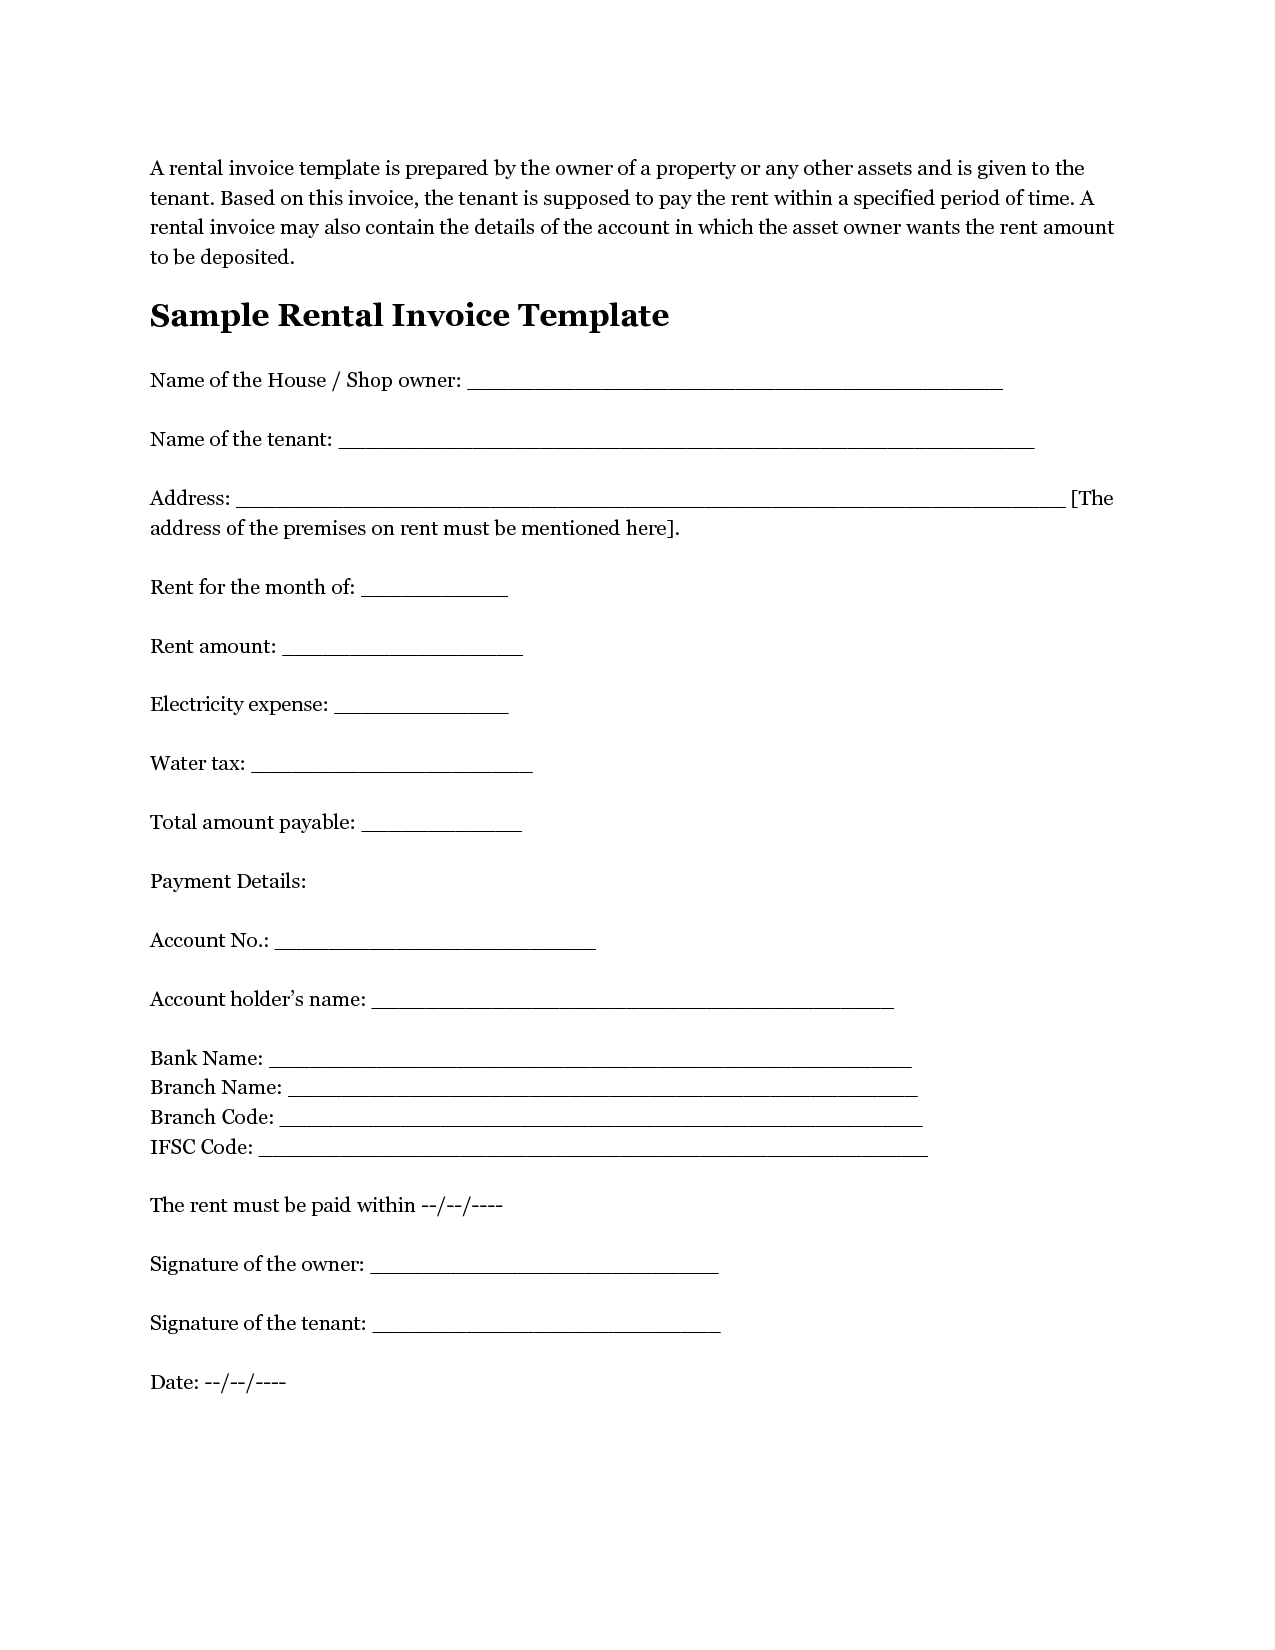 rent invoice form 18 best photos of house rental invoice template free rental 1275 X 1650